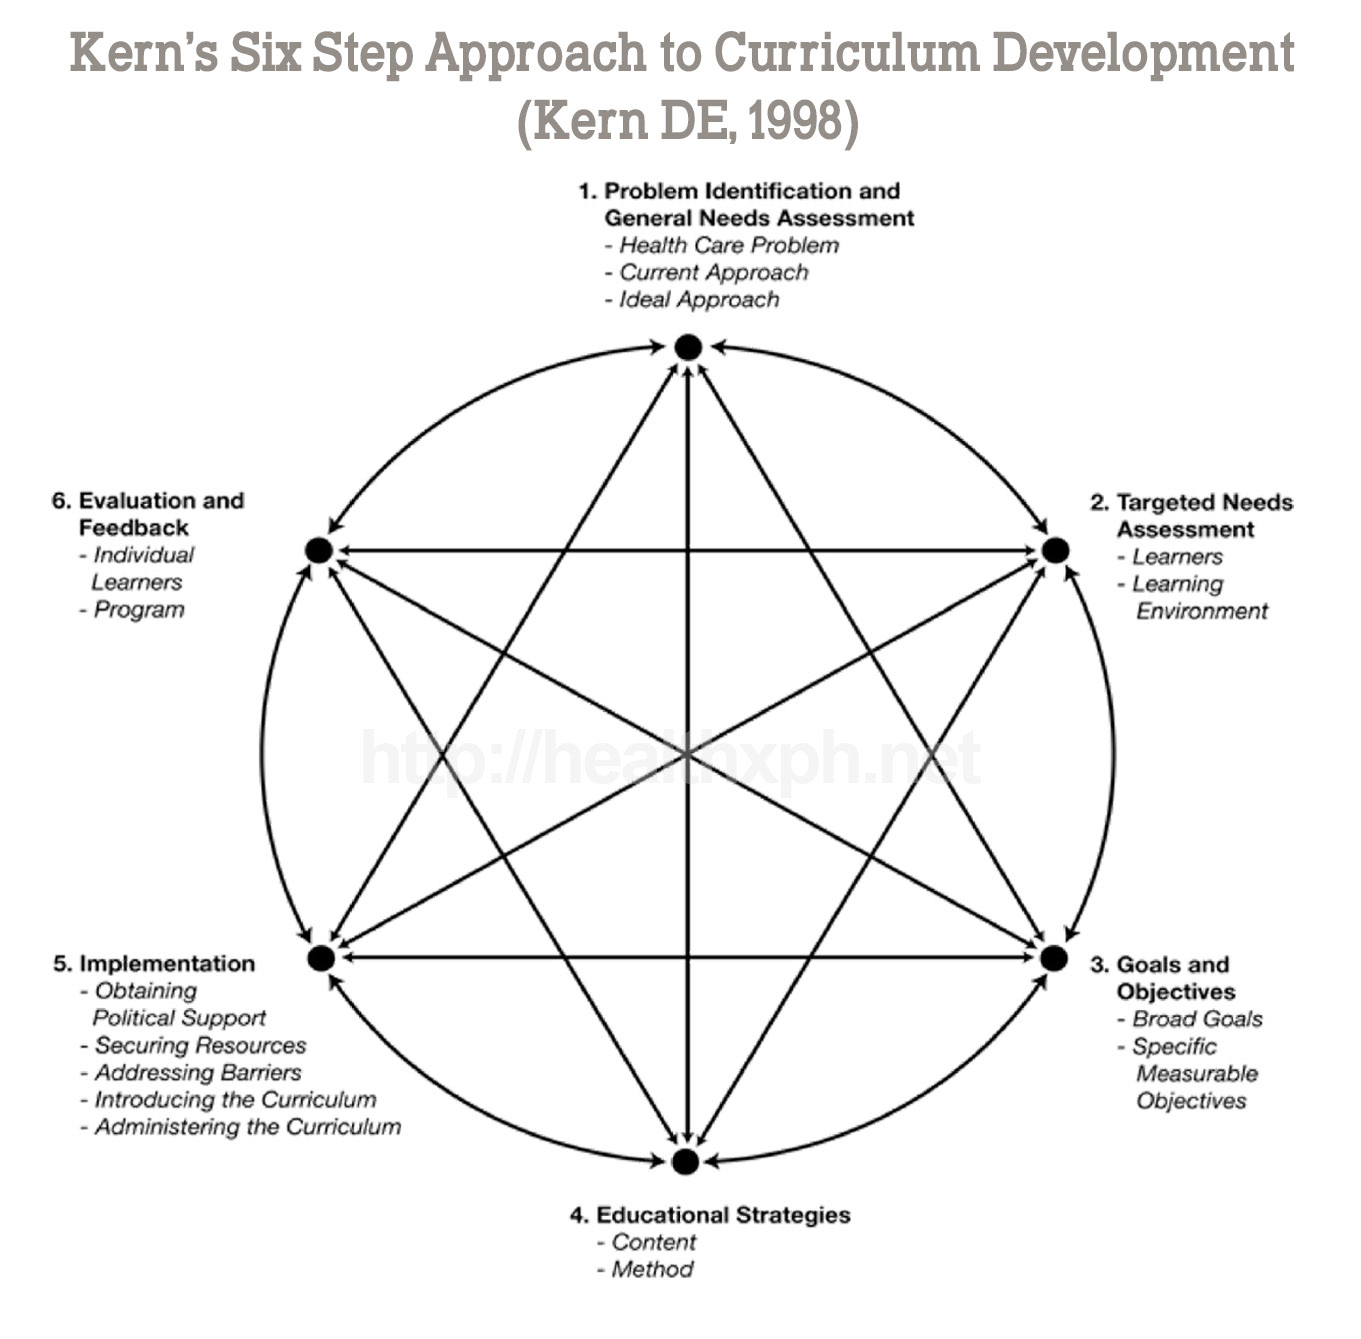 Kern's 6 Step Approach